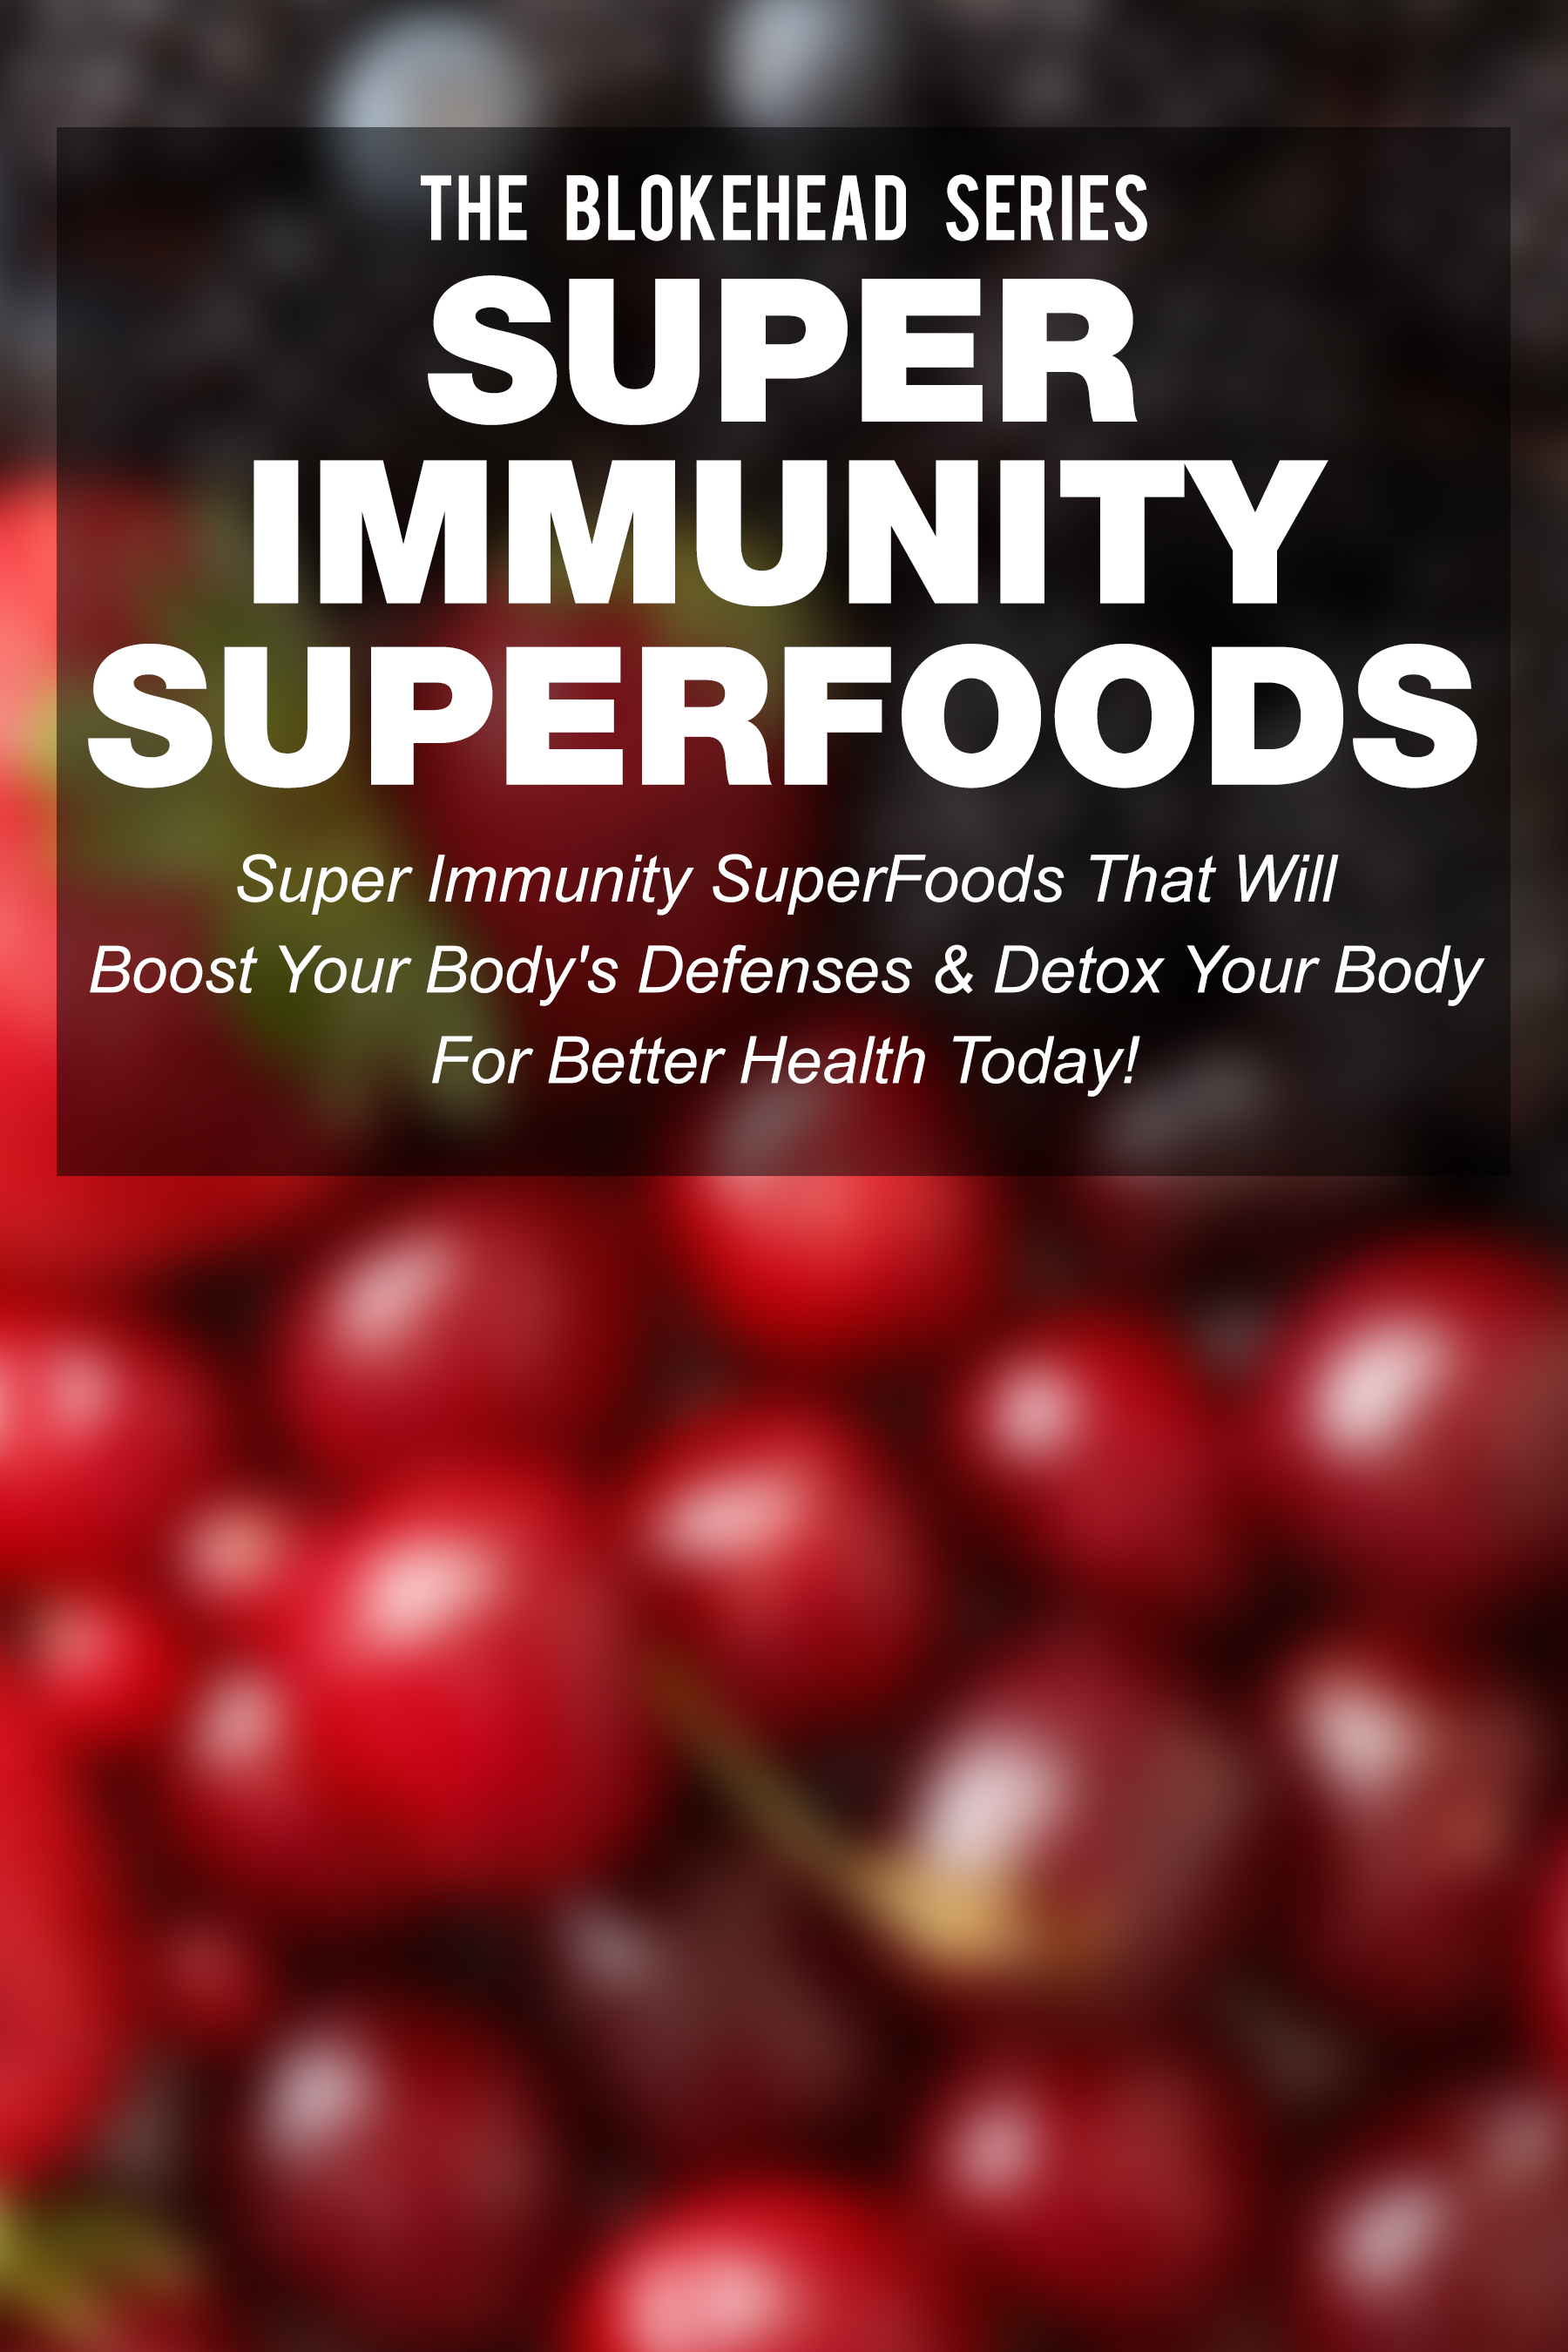 Super immunity superfoods: superfoods that will boost your body's defences & detox your body today